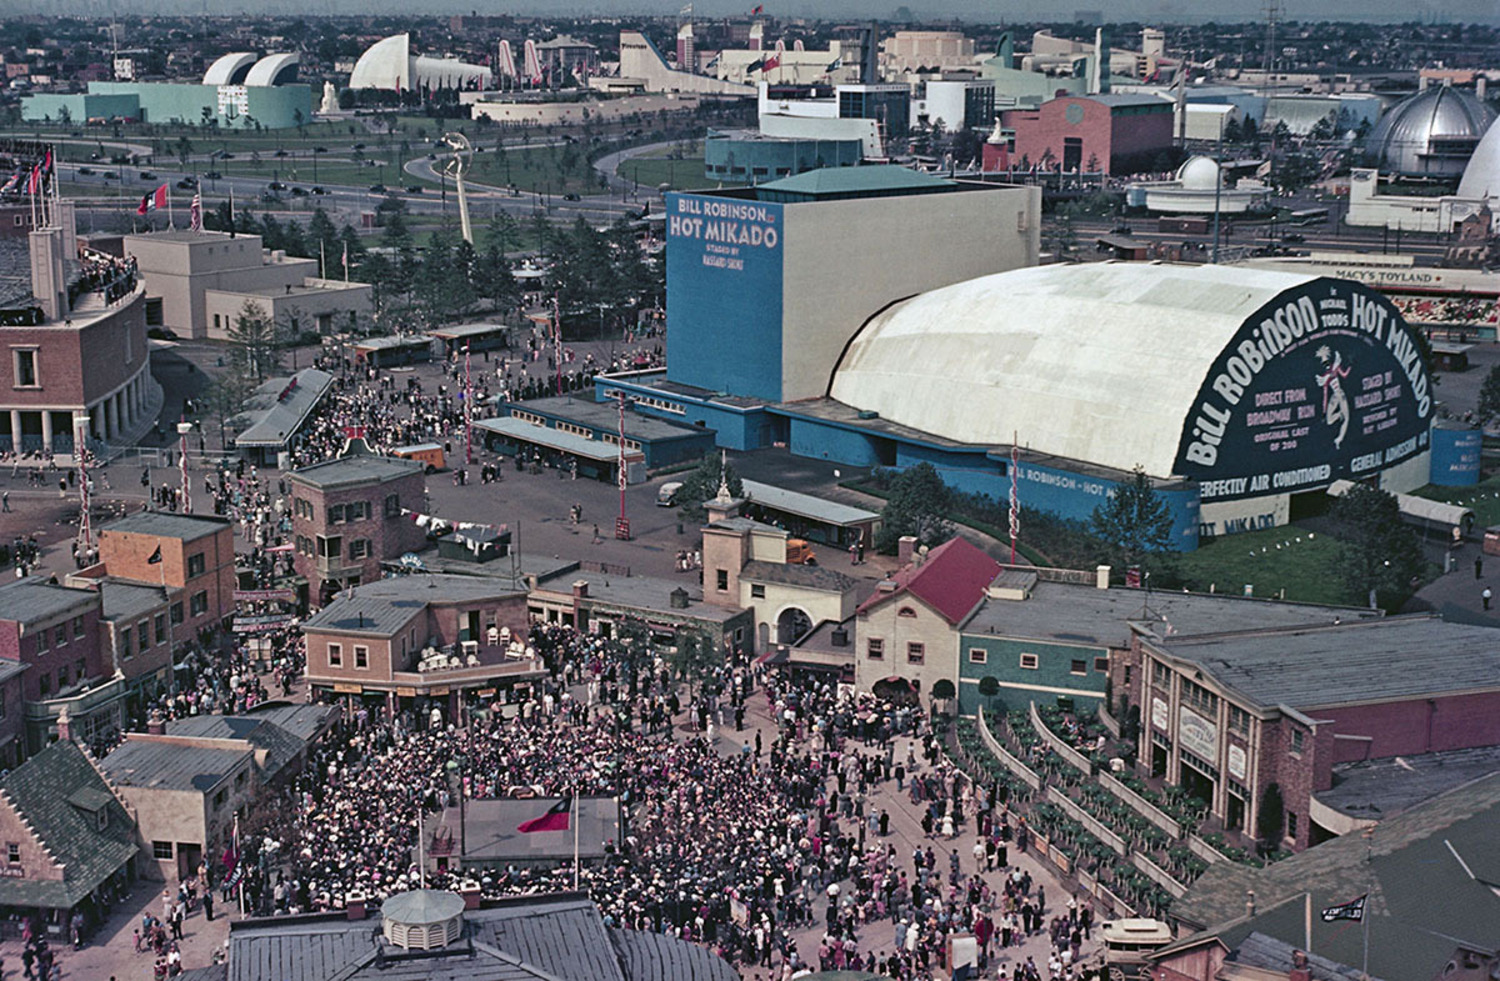 An aerial view of the fair shows the music hall advertising Hot Mikado with Bill Robinson.